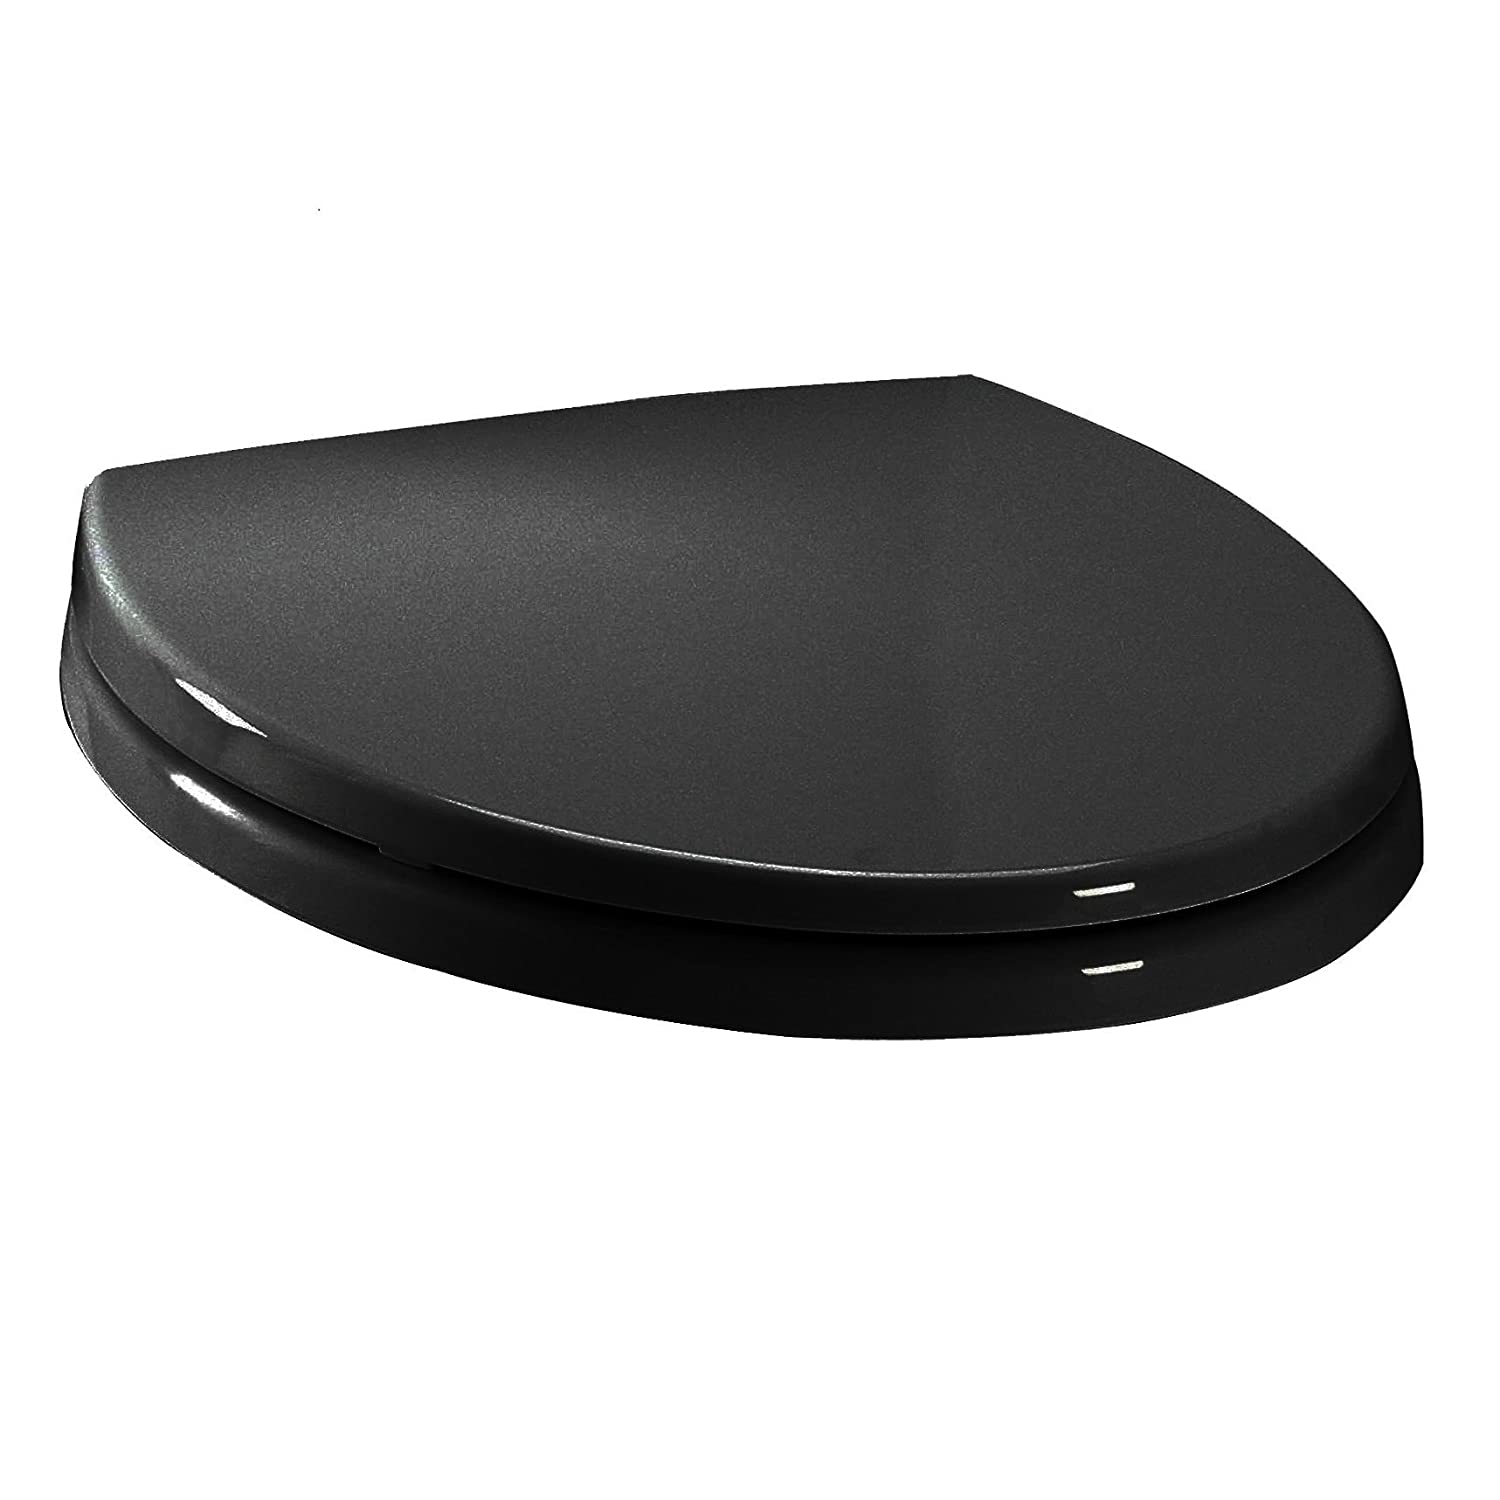 TOTO SS Transitional SoftClose Elongated Toilet Seat Sedona - Black elongated toilet seat cover